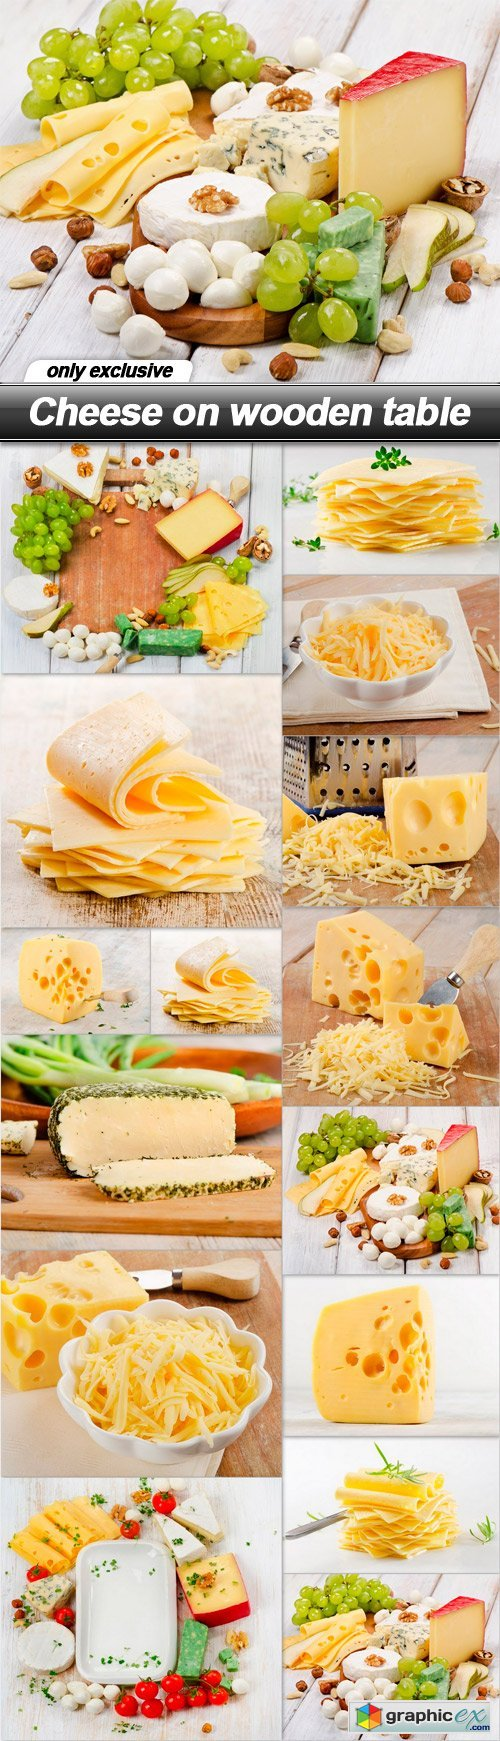 Cheese on wooden table - 15 UHQ JPEG